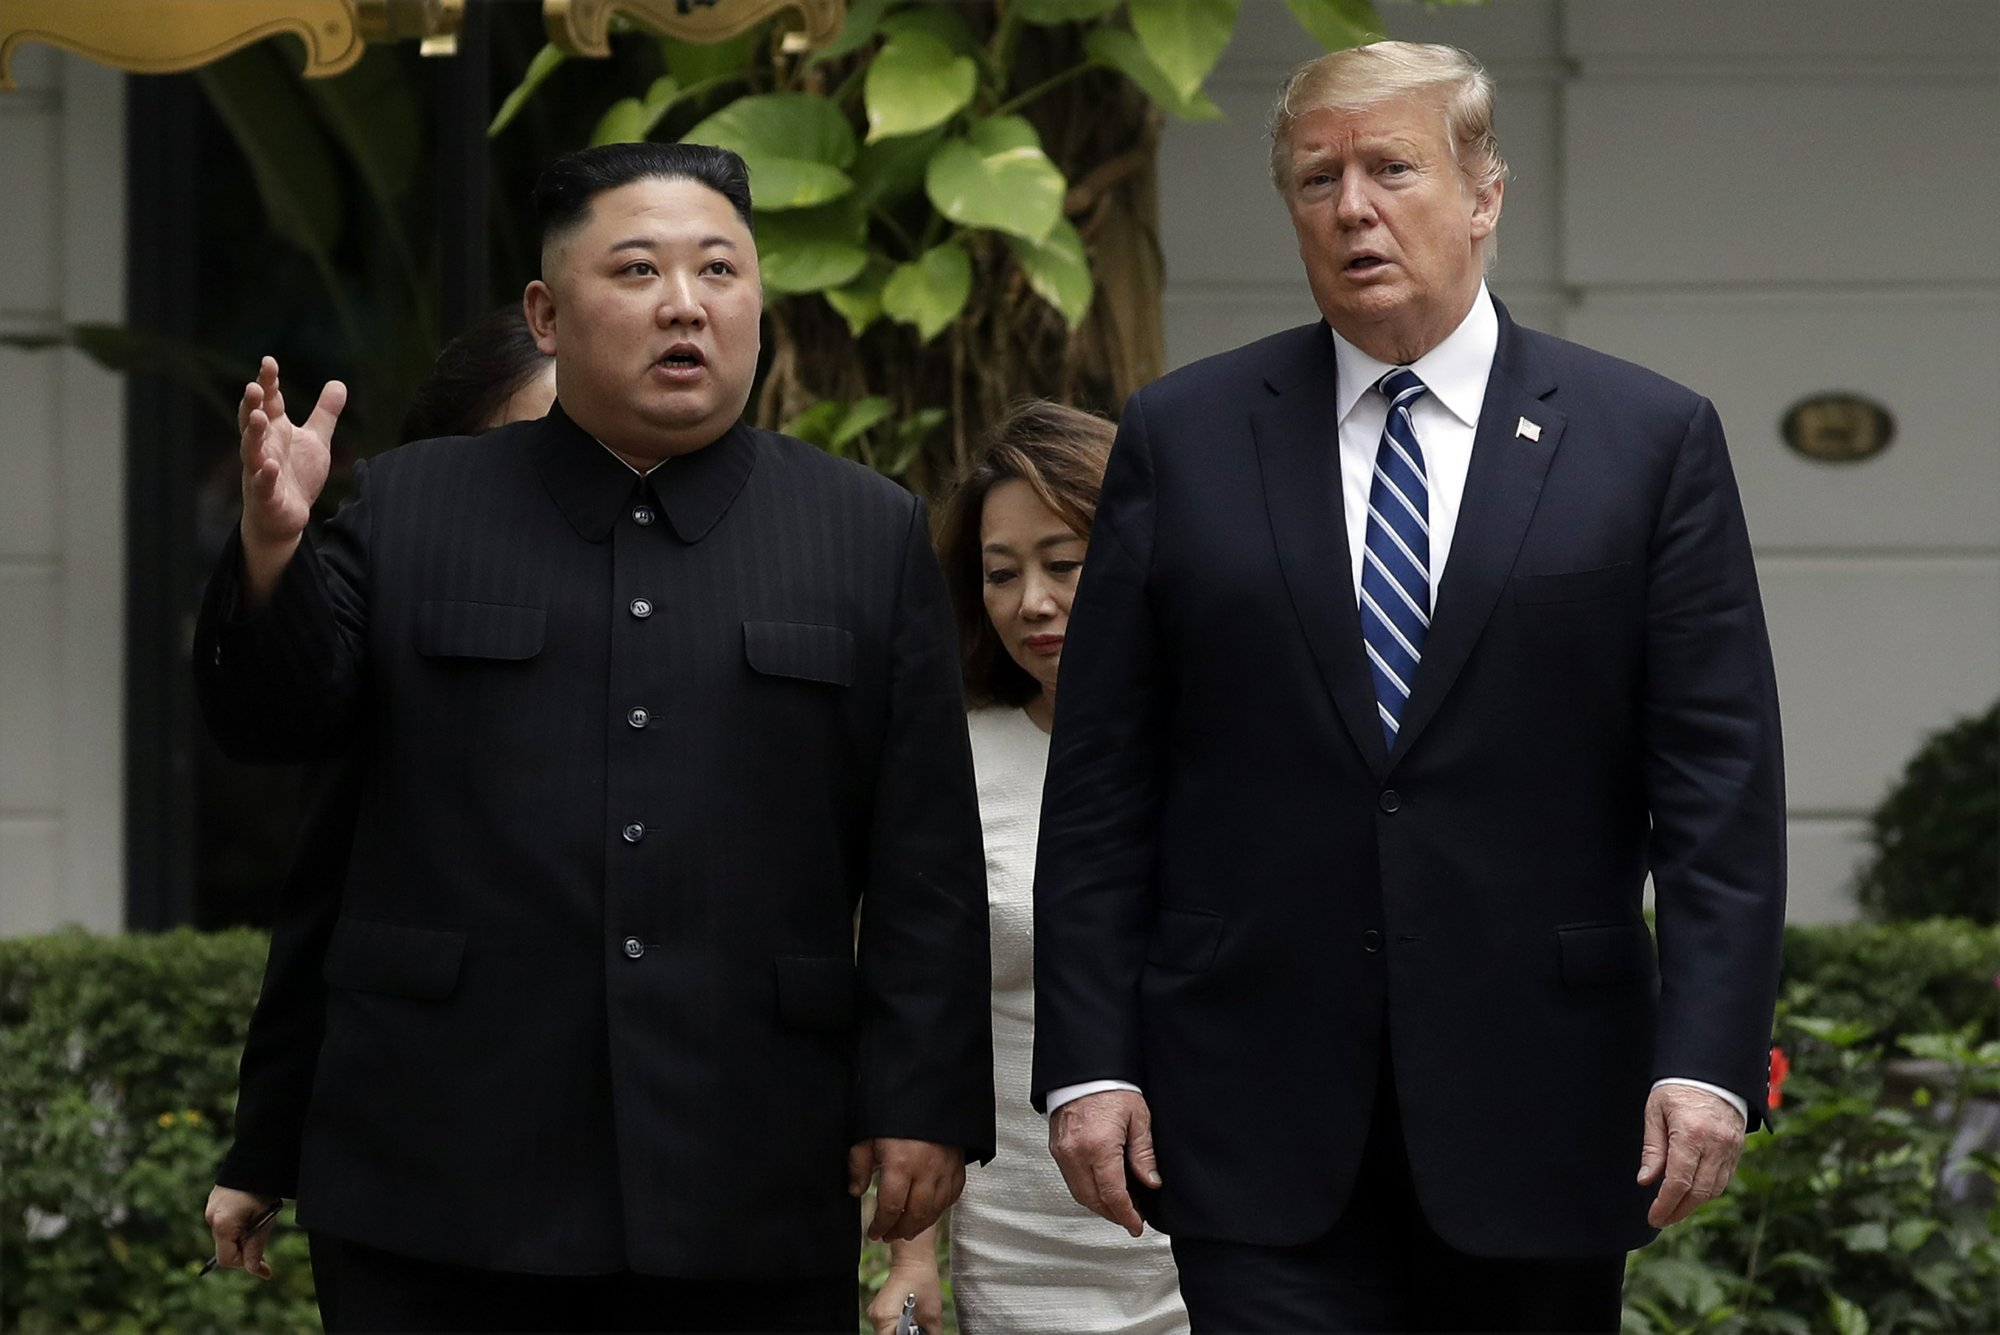 In this Thursday, Feb. 28, 2019, file photo, President Donald Trump and North Korean leader Kim Jong Un take a walk after their first meeting at the Sofitel Legend Metropole Hanoi hotel, in Hanoi. Kim says he's open to having a third summit with Trump if the United States could offer mutually-acceptable terms for an agreement by the end of the year. (AP Photo/Evan Vucci)